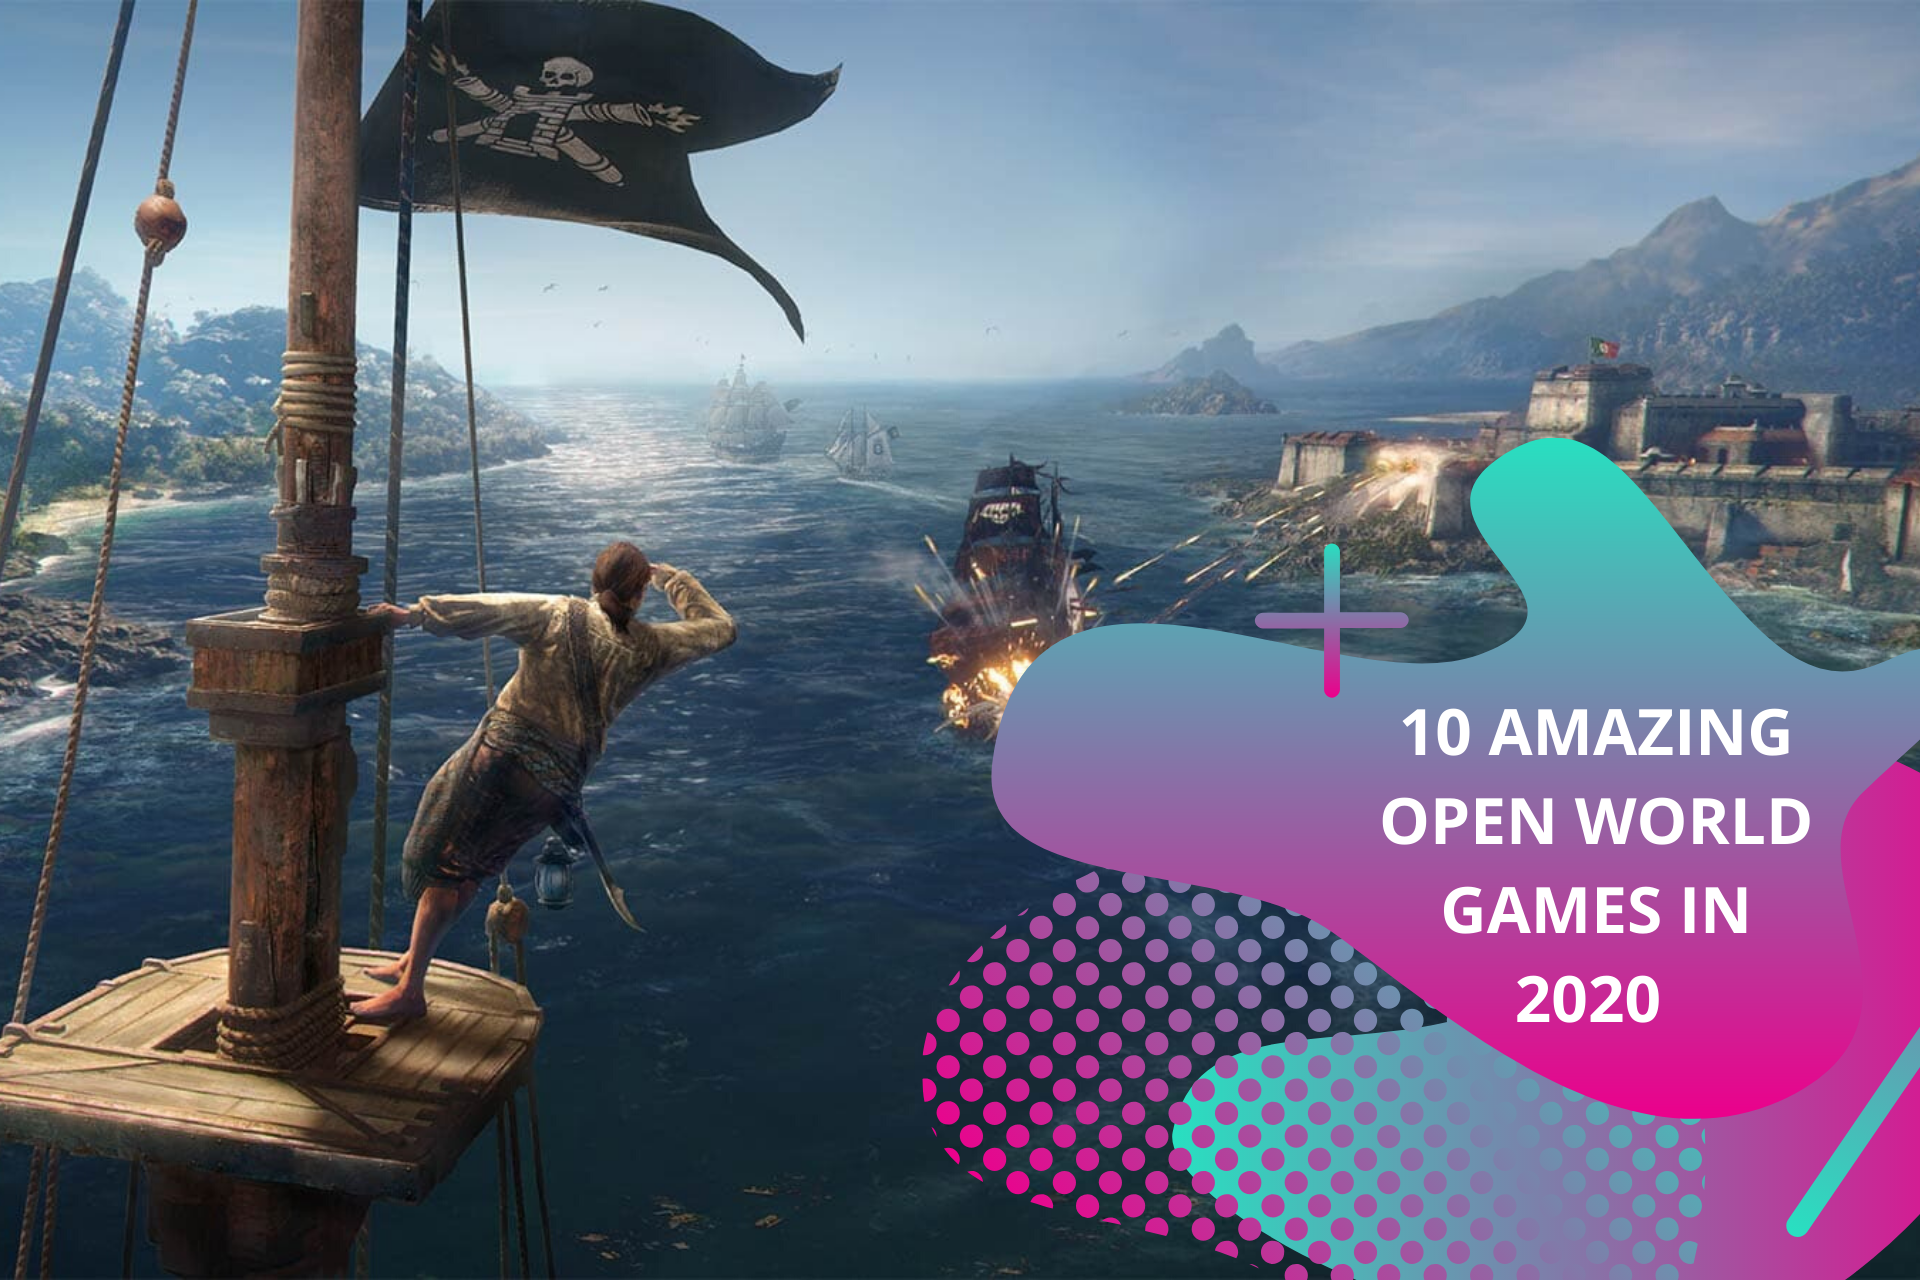 10 amazing open world games in 2020